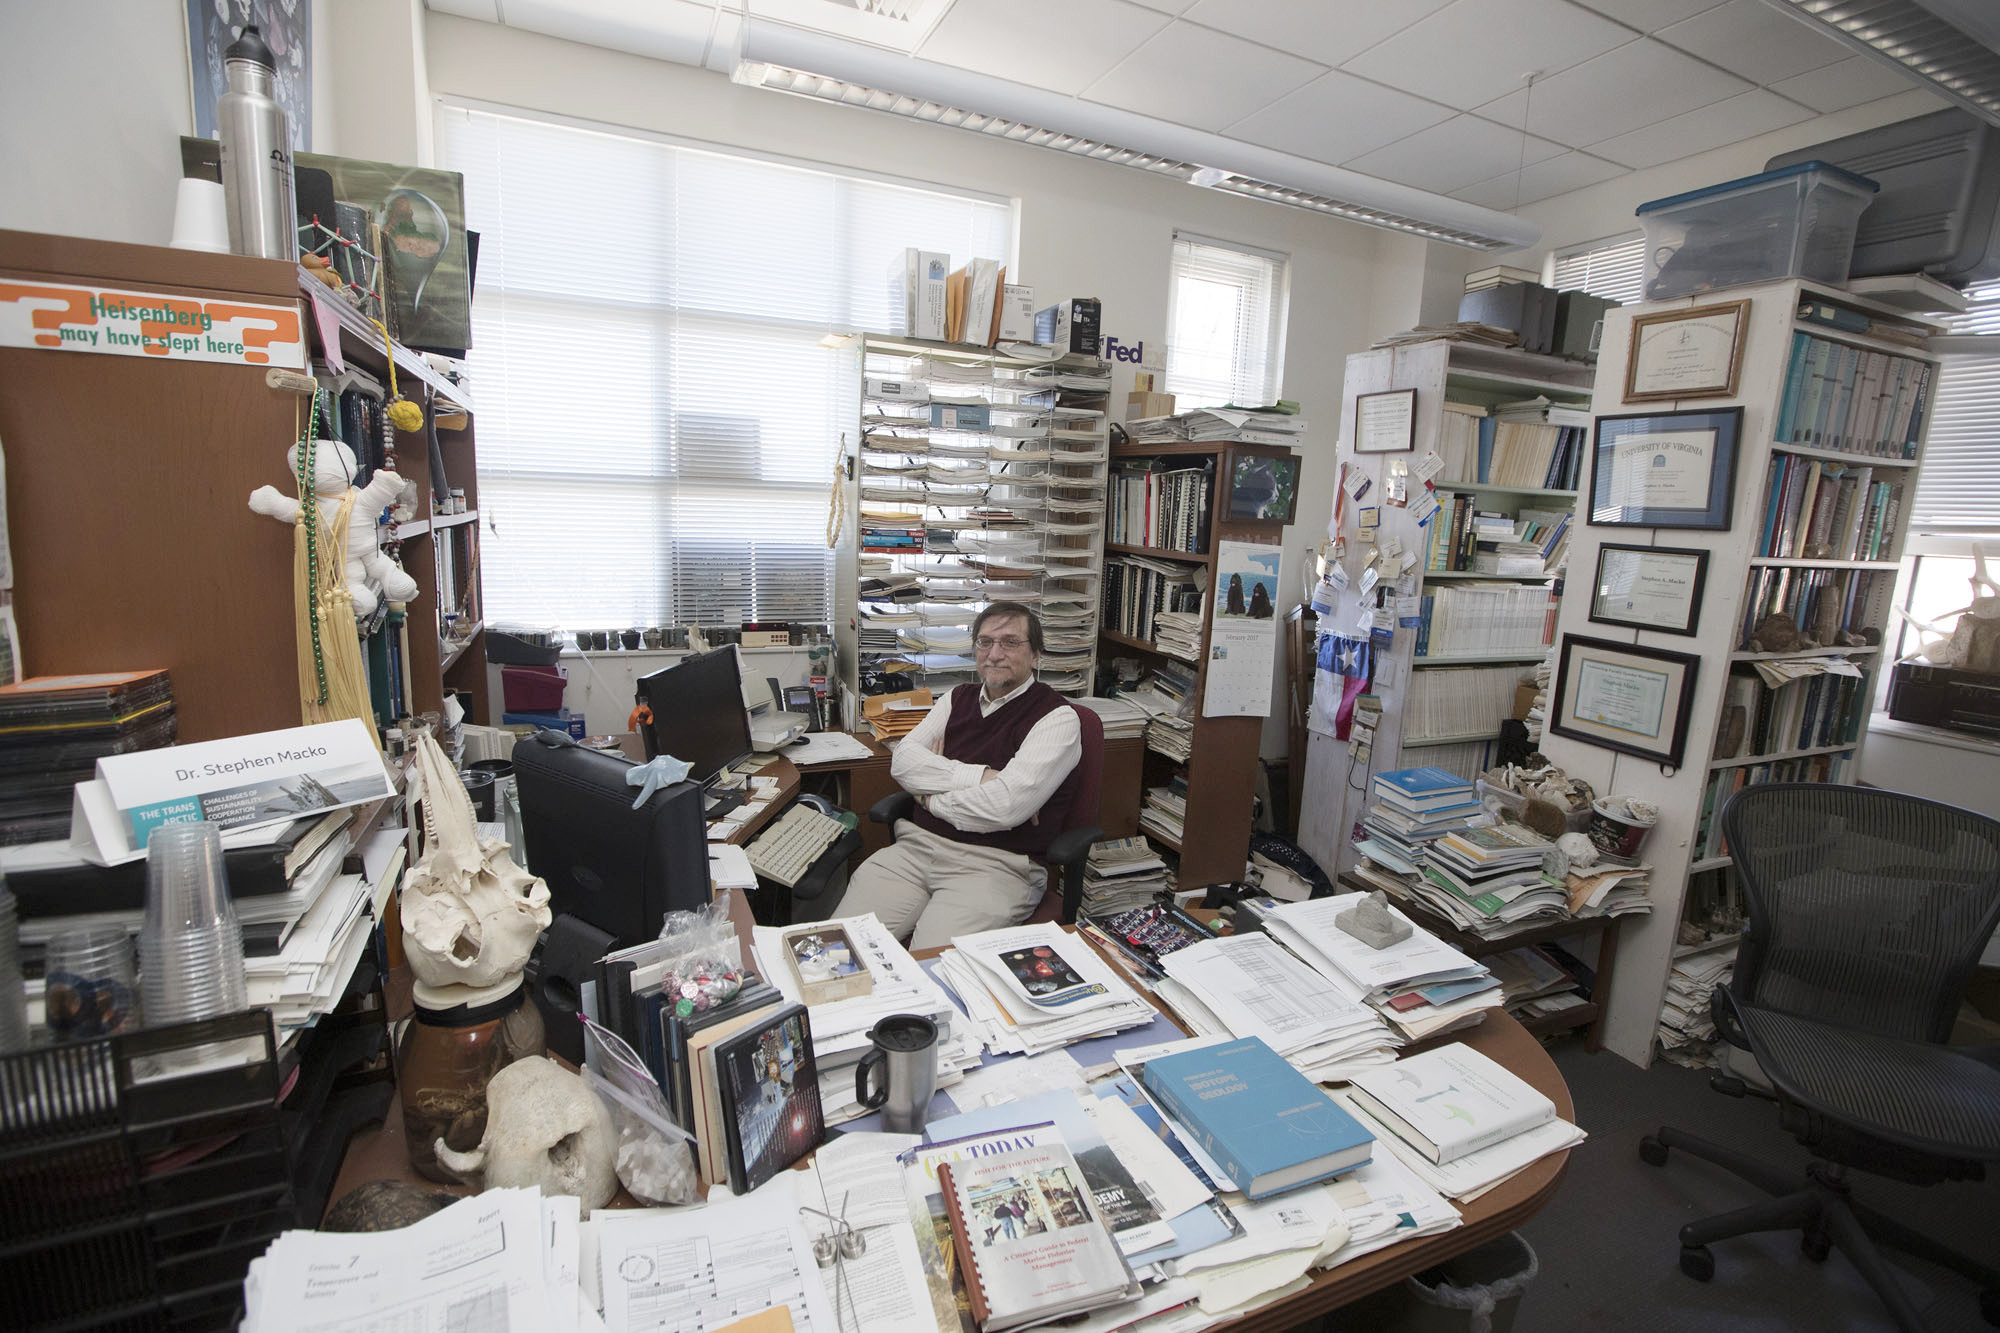 The Macko Museum of Natural History, and its curator, environmental scientist Stephen Macko.